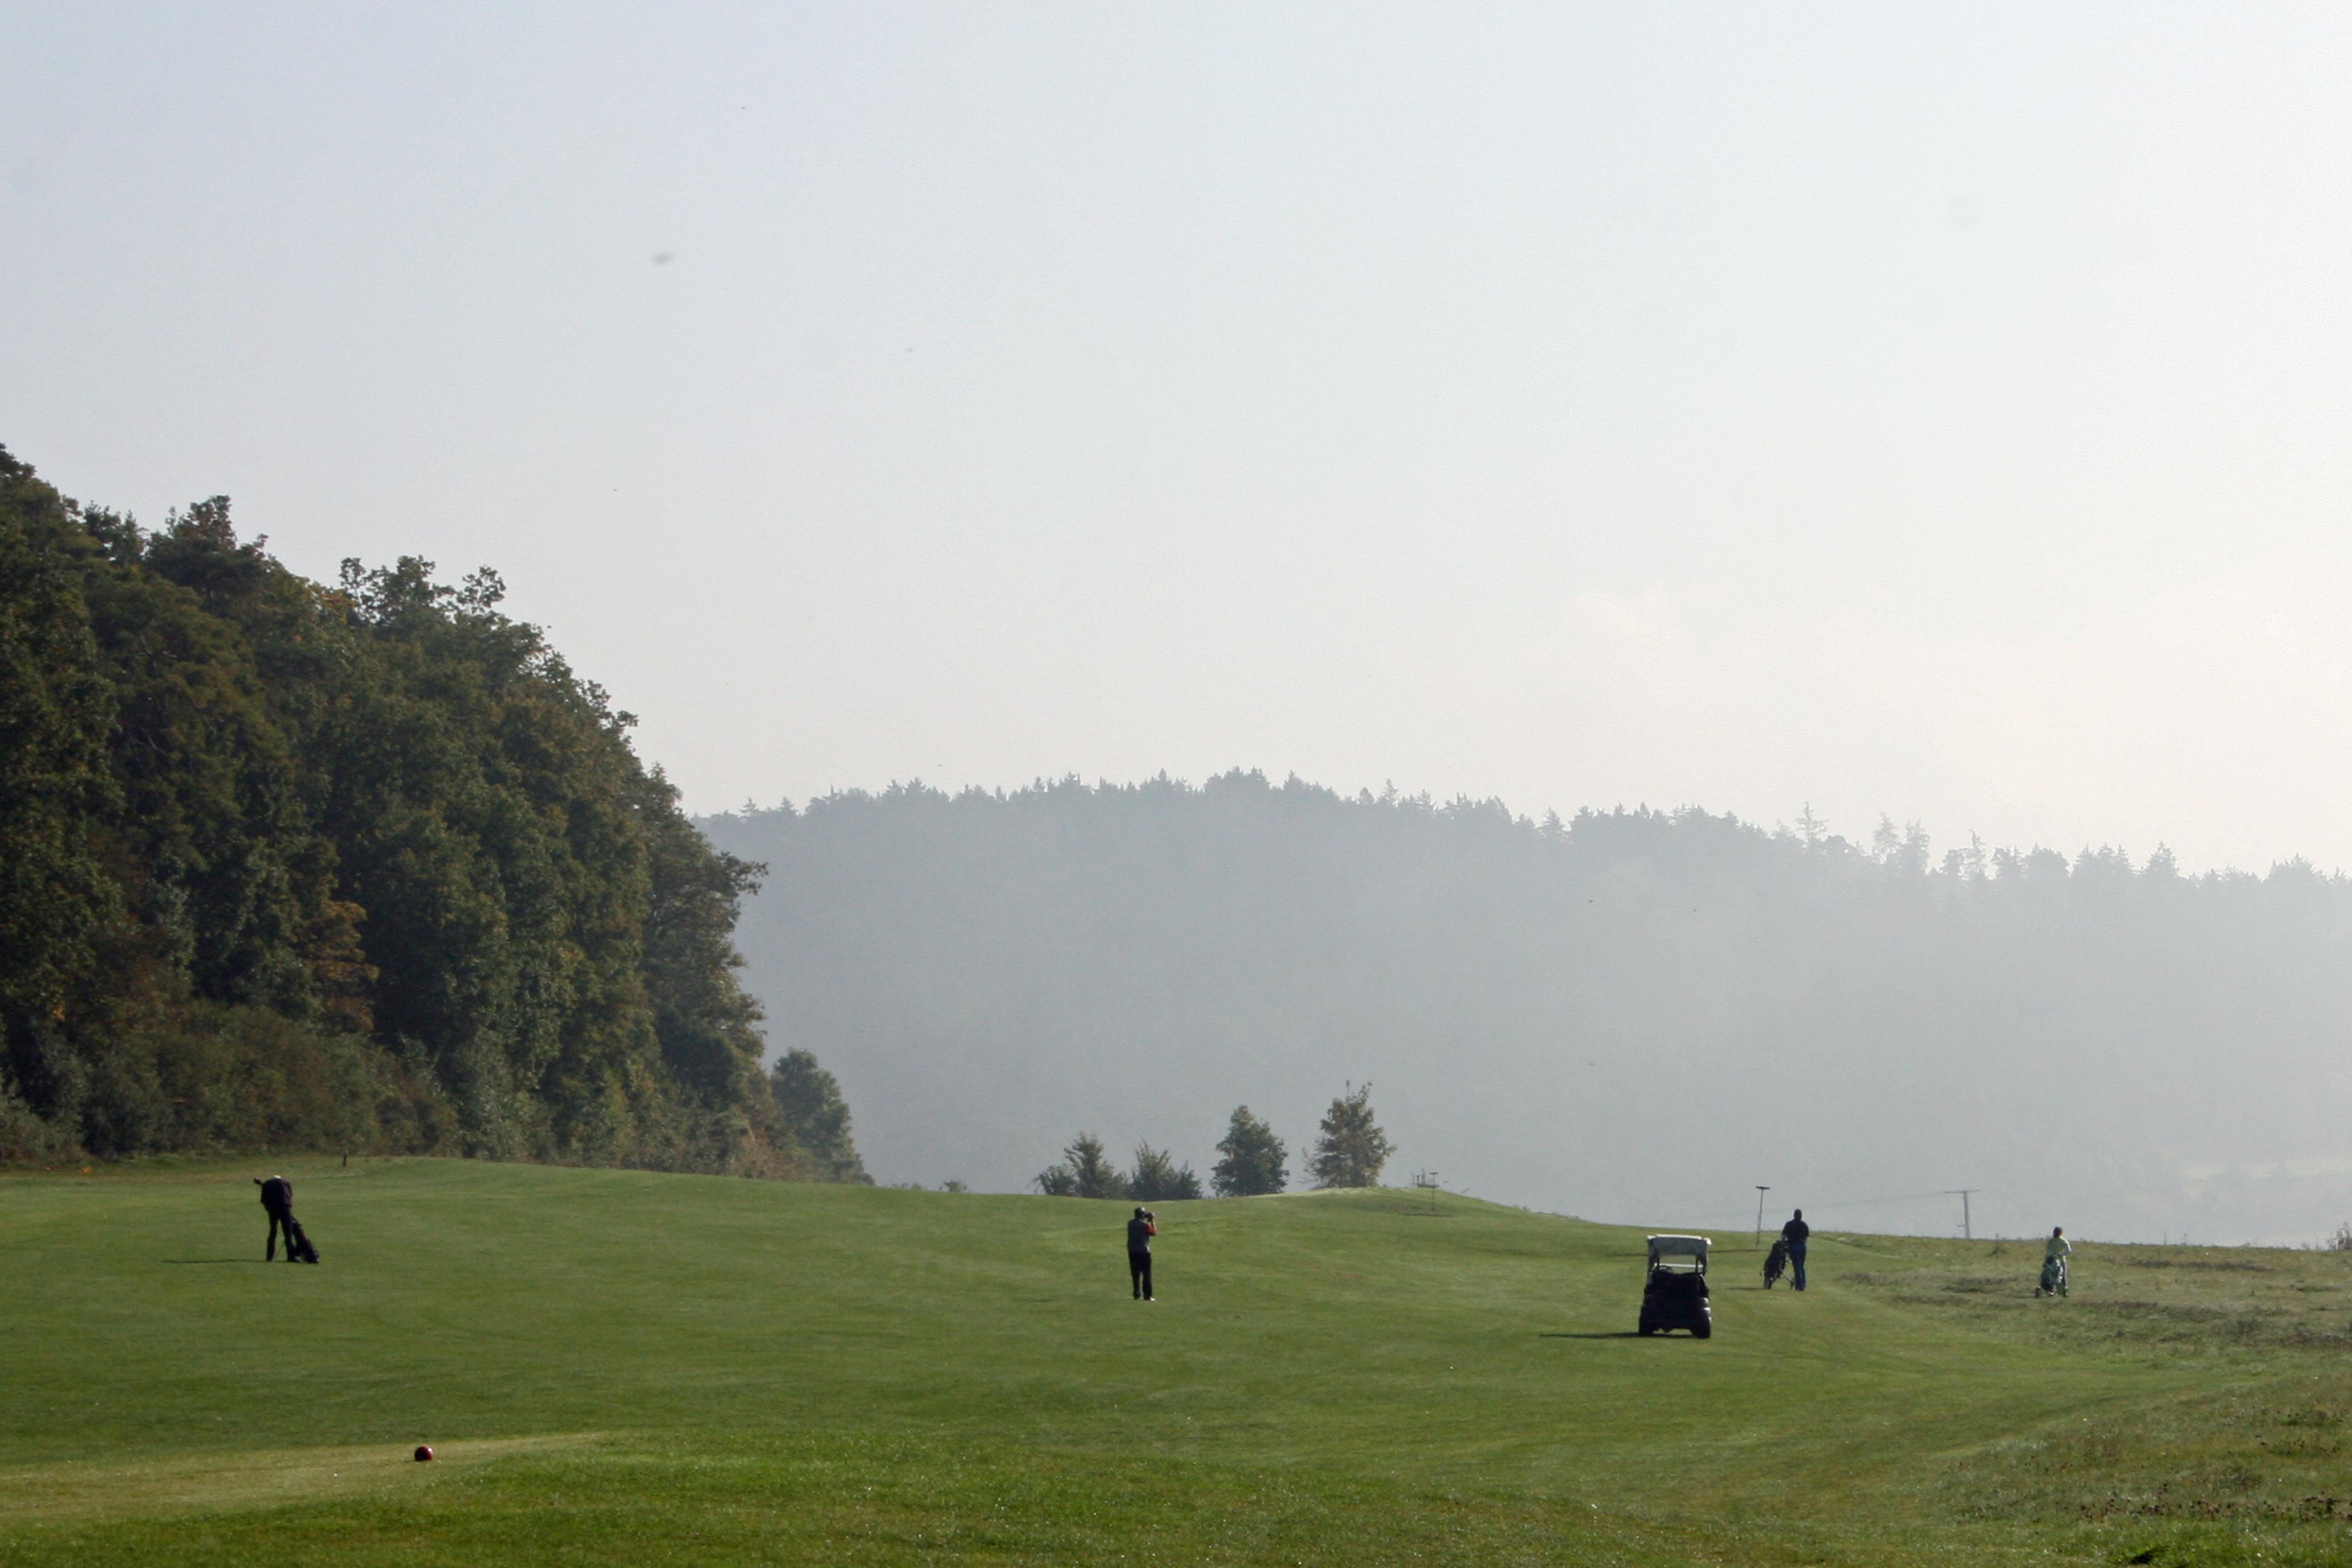 Overview of golf course named Altmuhlgolf Beilngries Gmbh